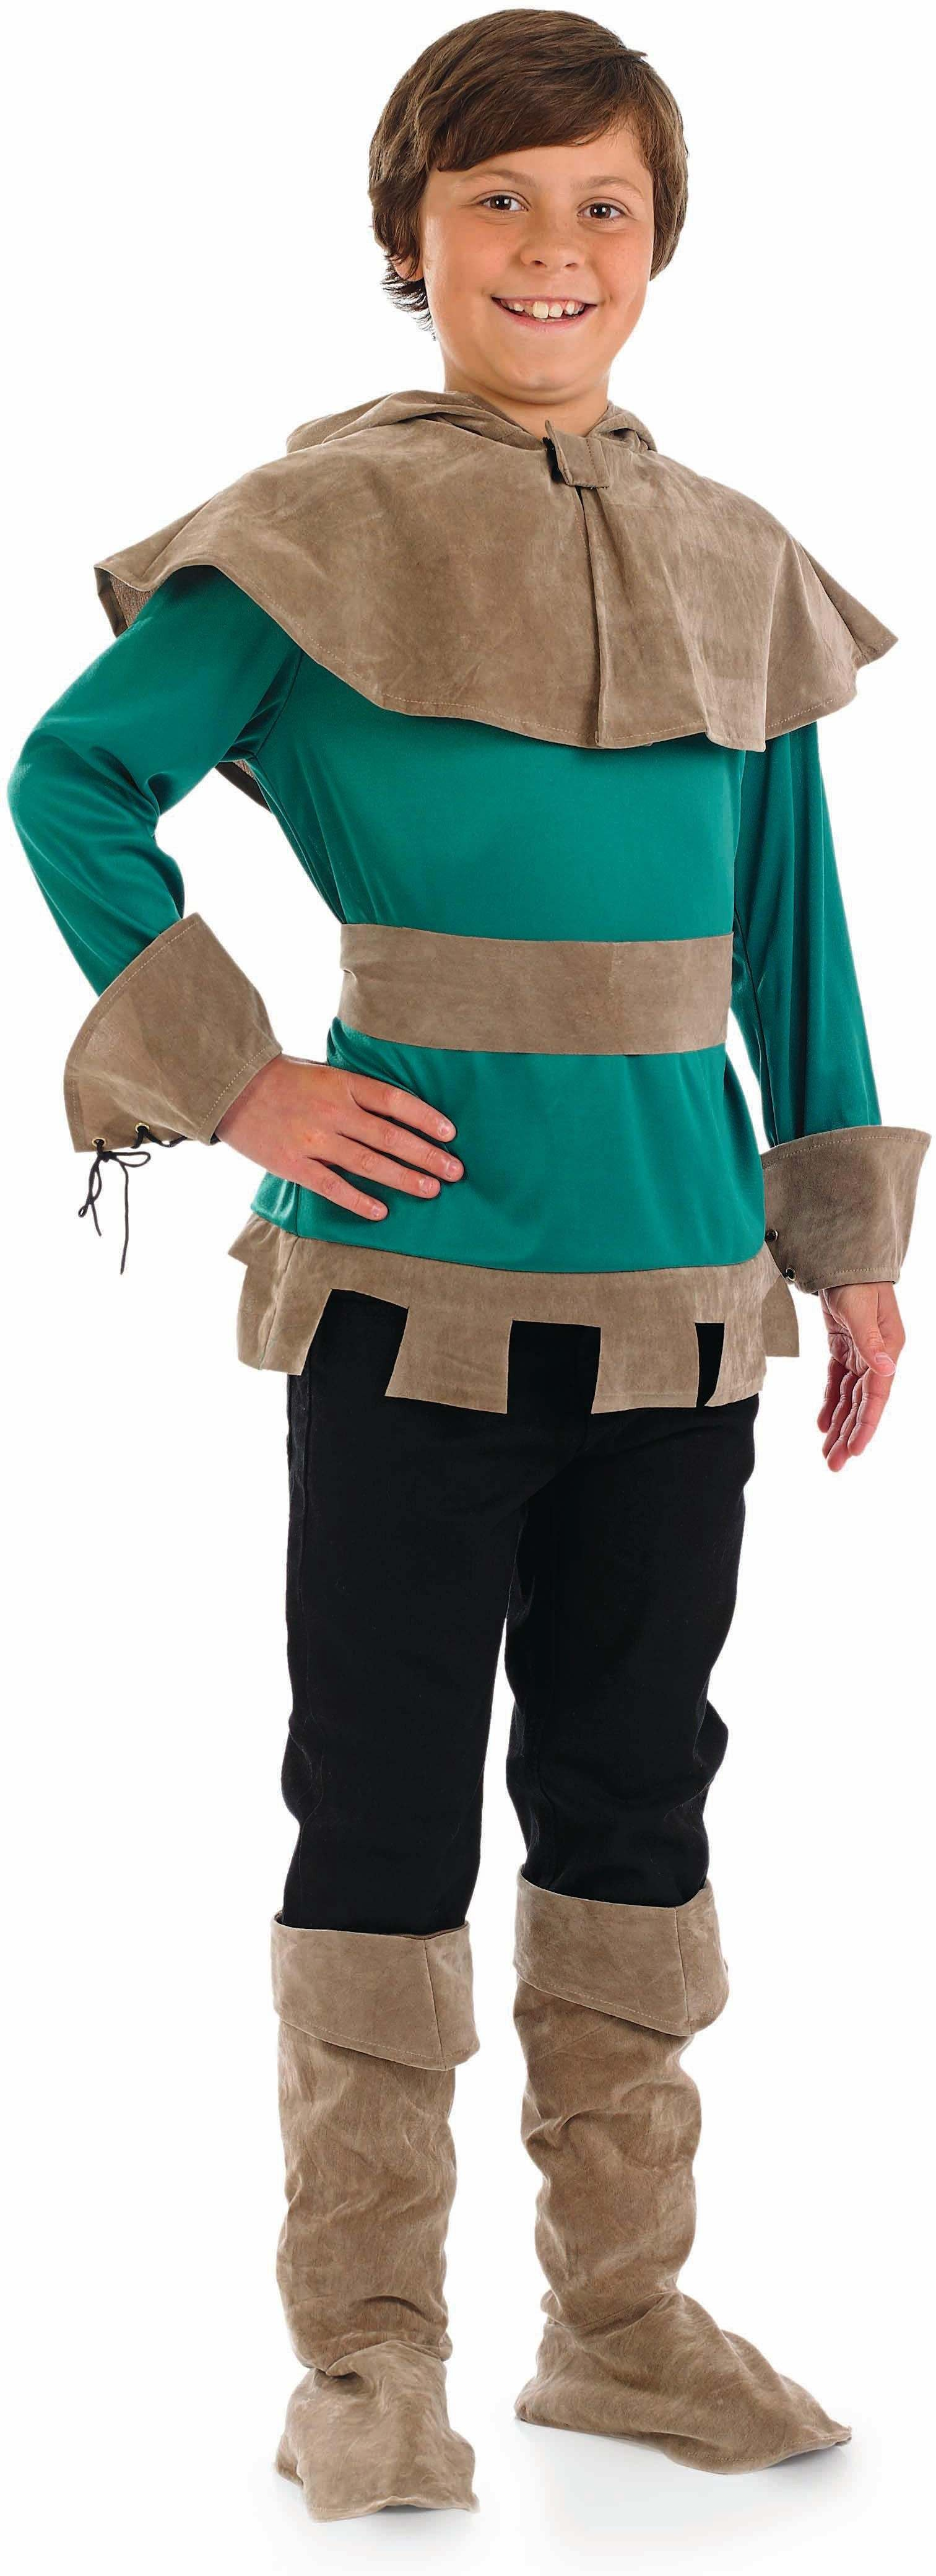 Boys Robin Hood Old English Outfit - (Green, Brown)